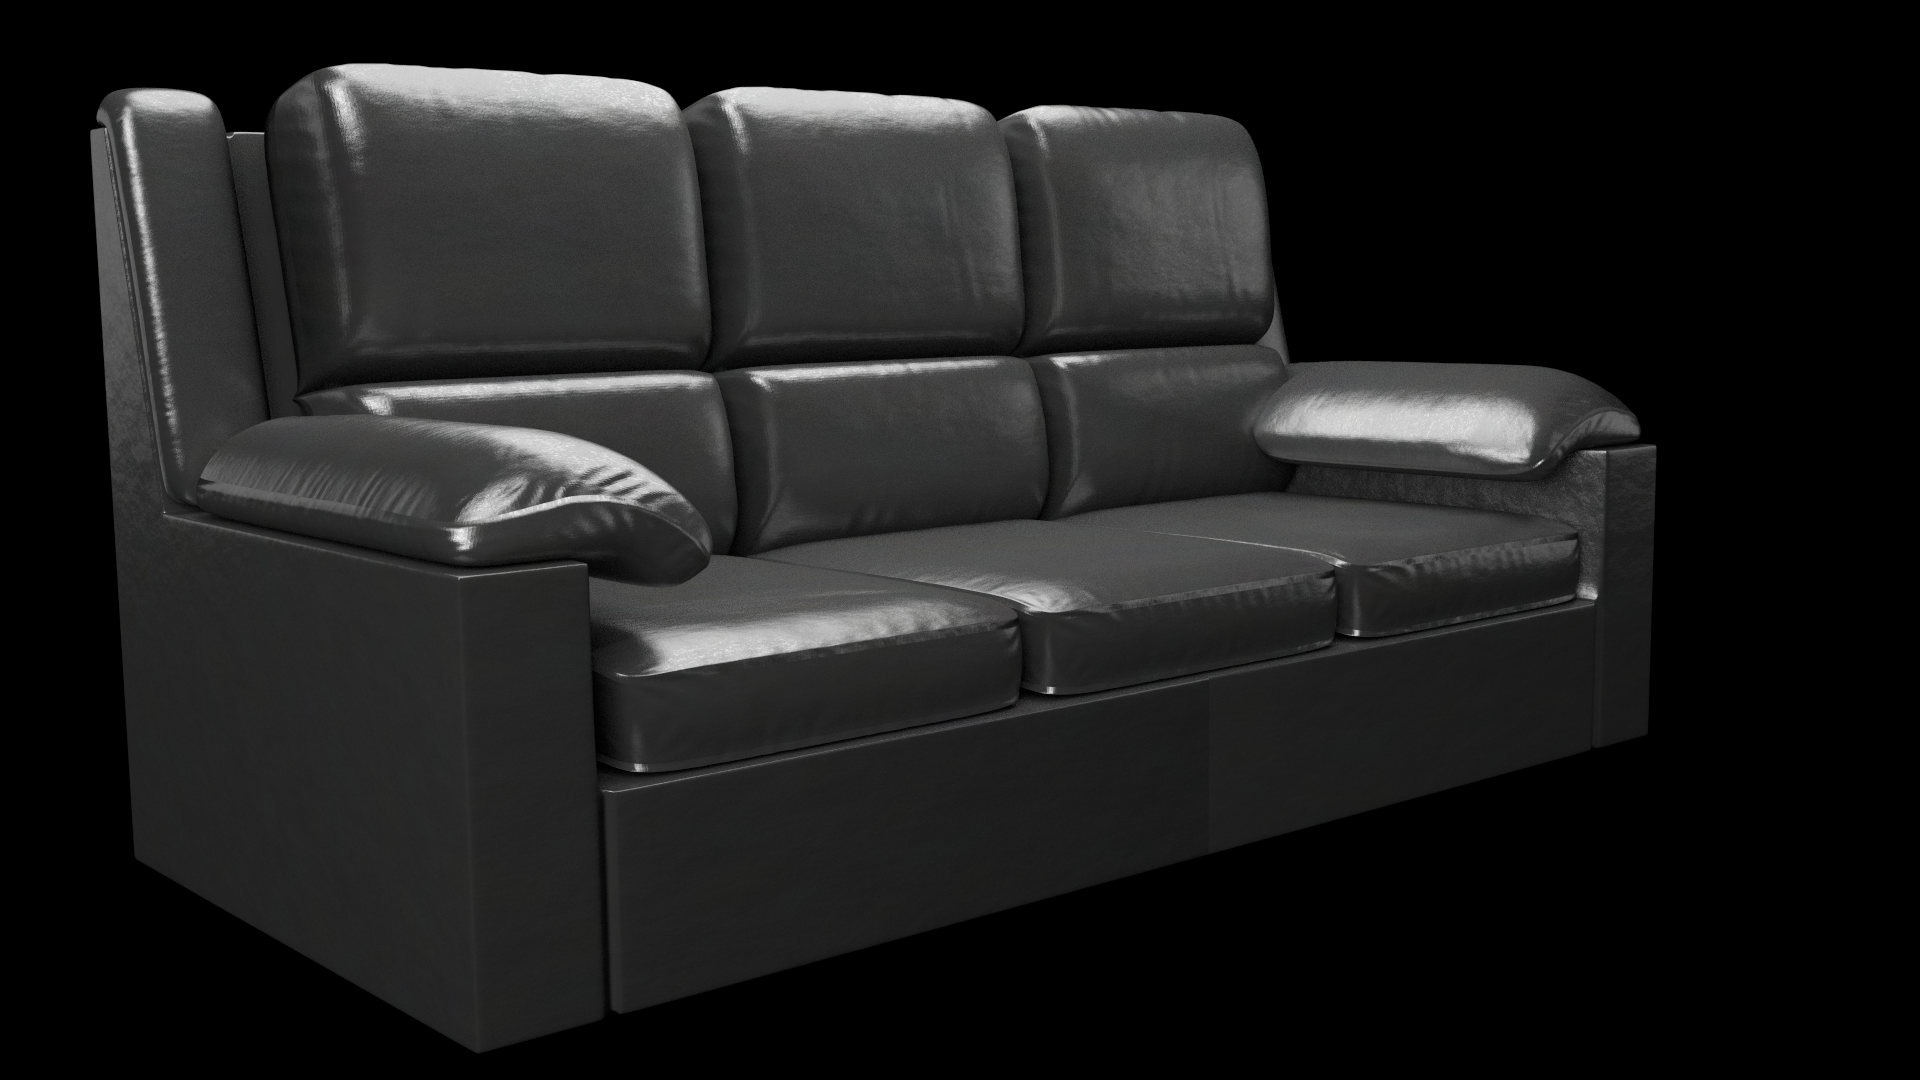 A Couch I Spent Way Too Much Time On Blender